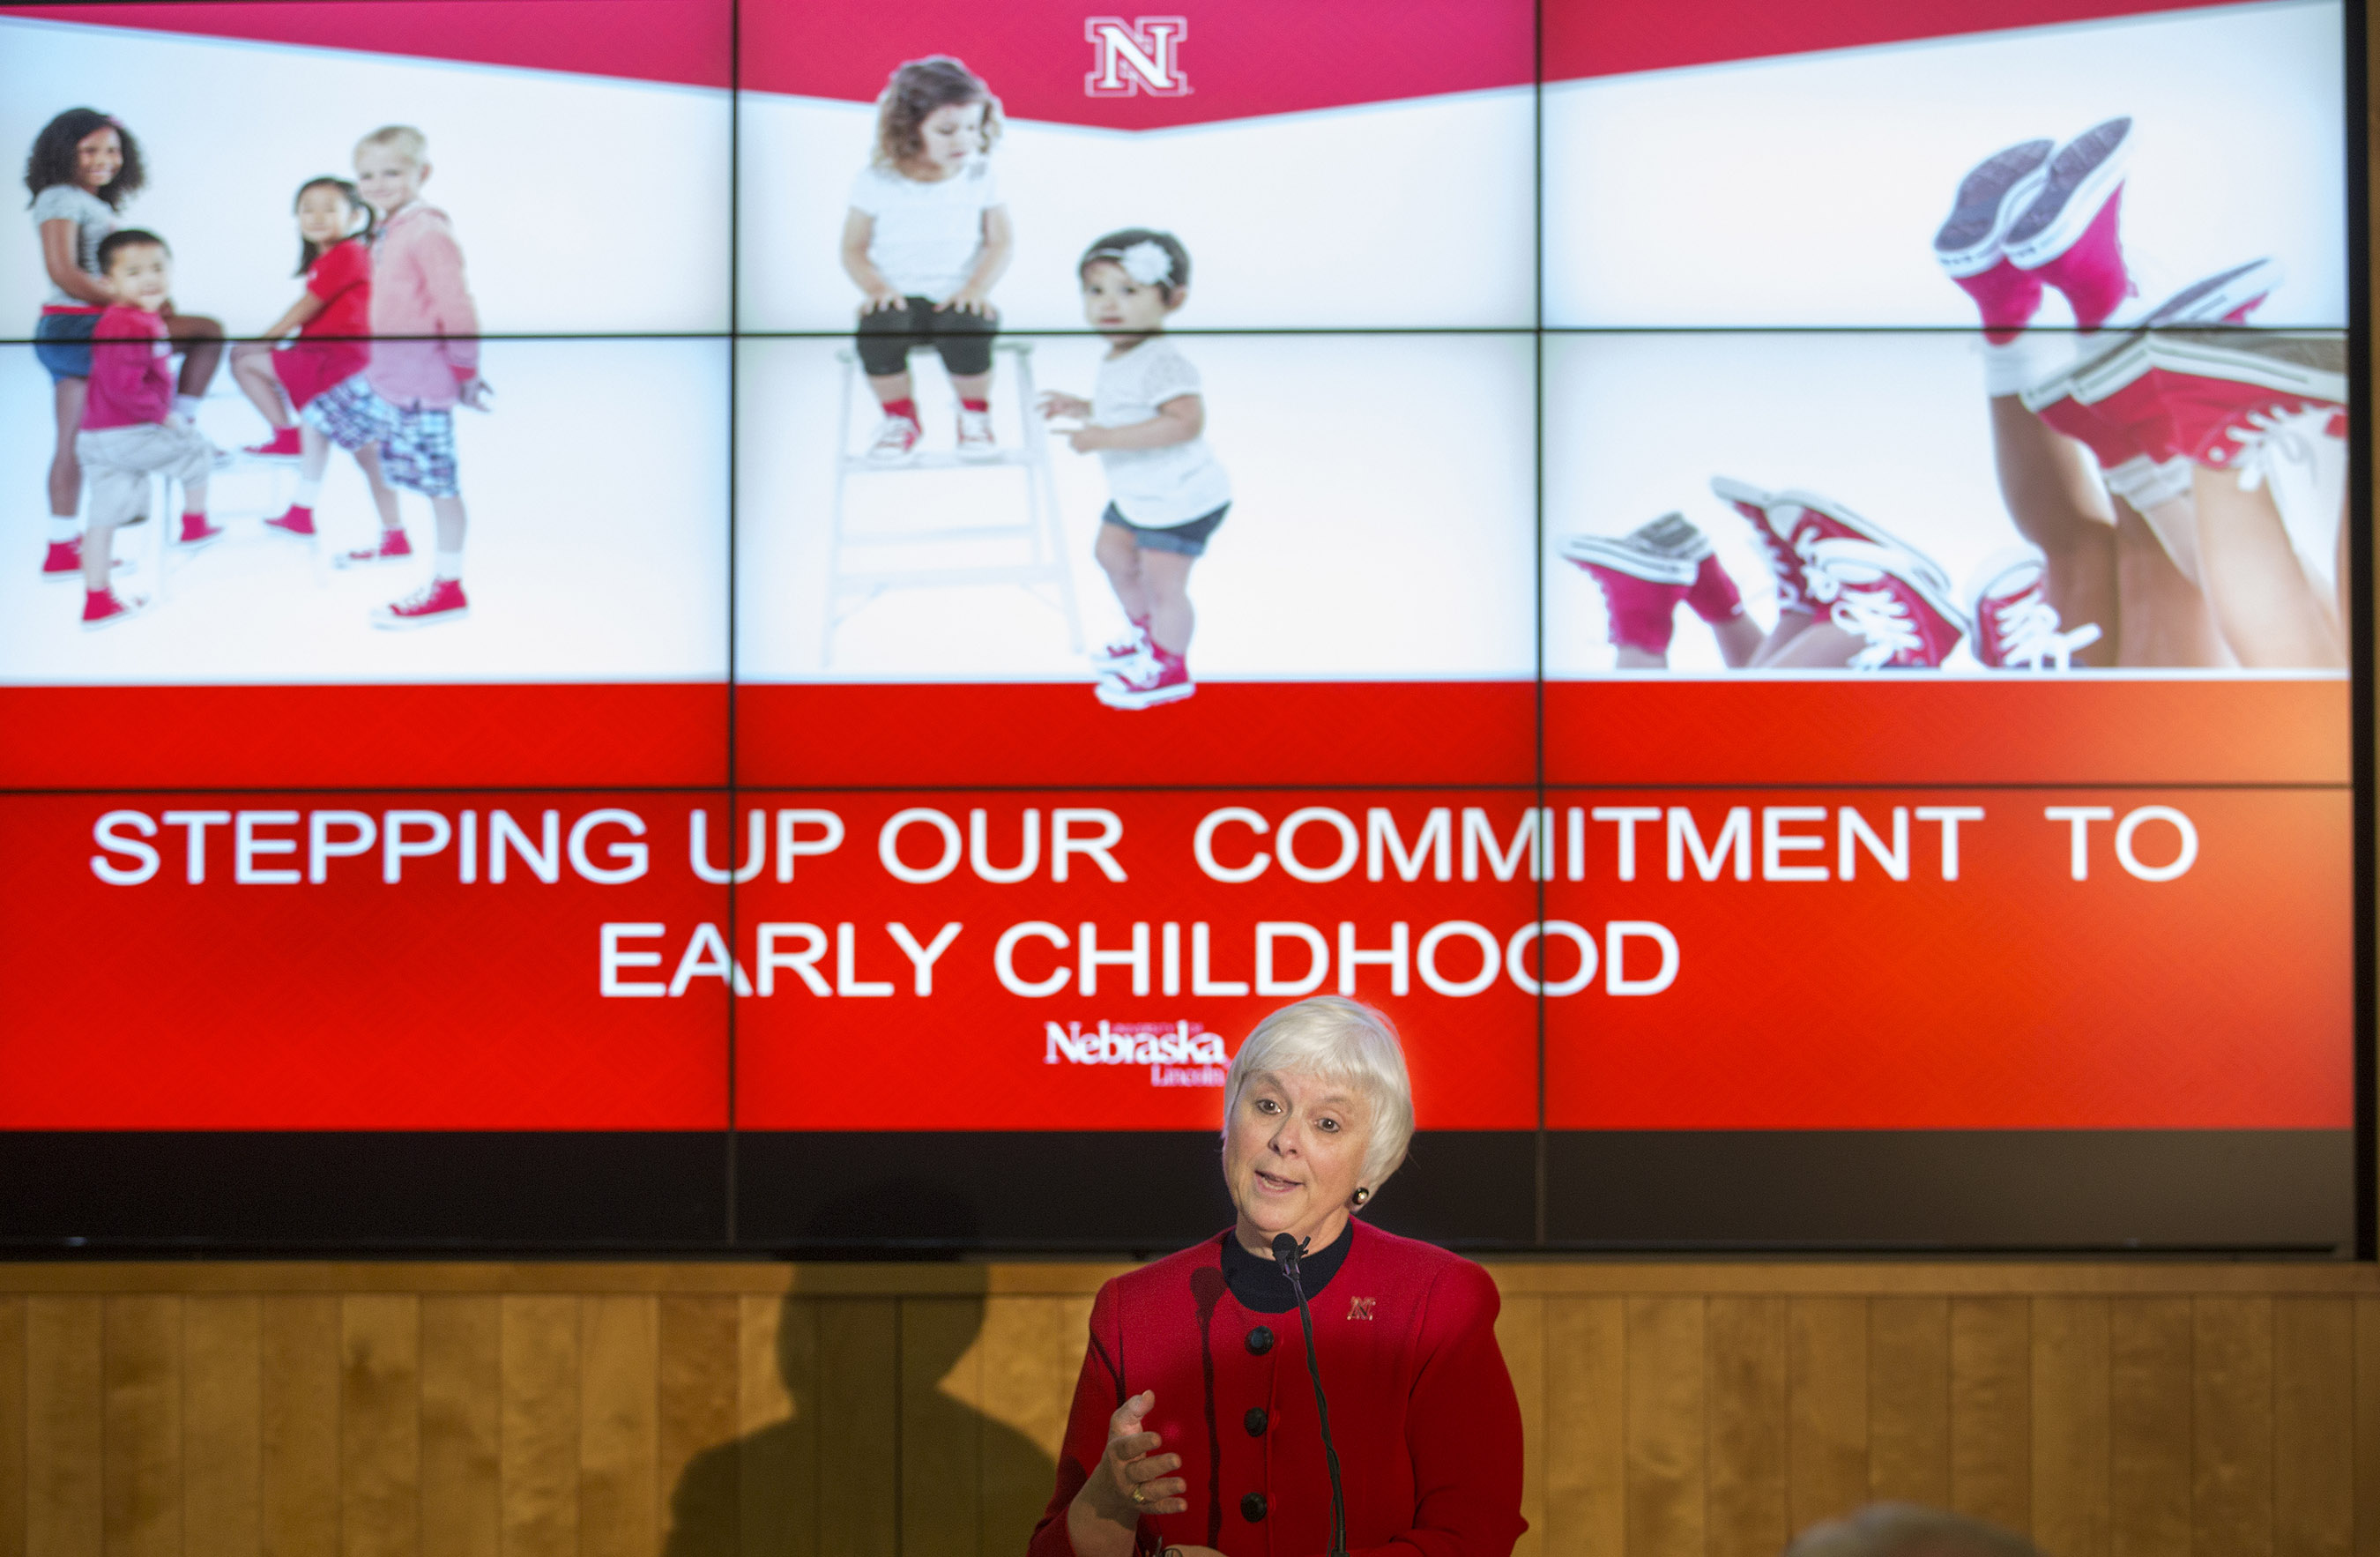 Unl Announces Stepping Up Of Commitment To Early Childhood